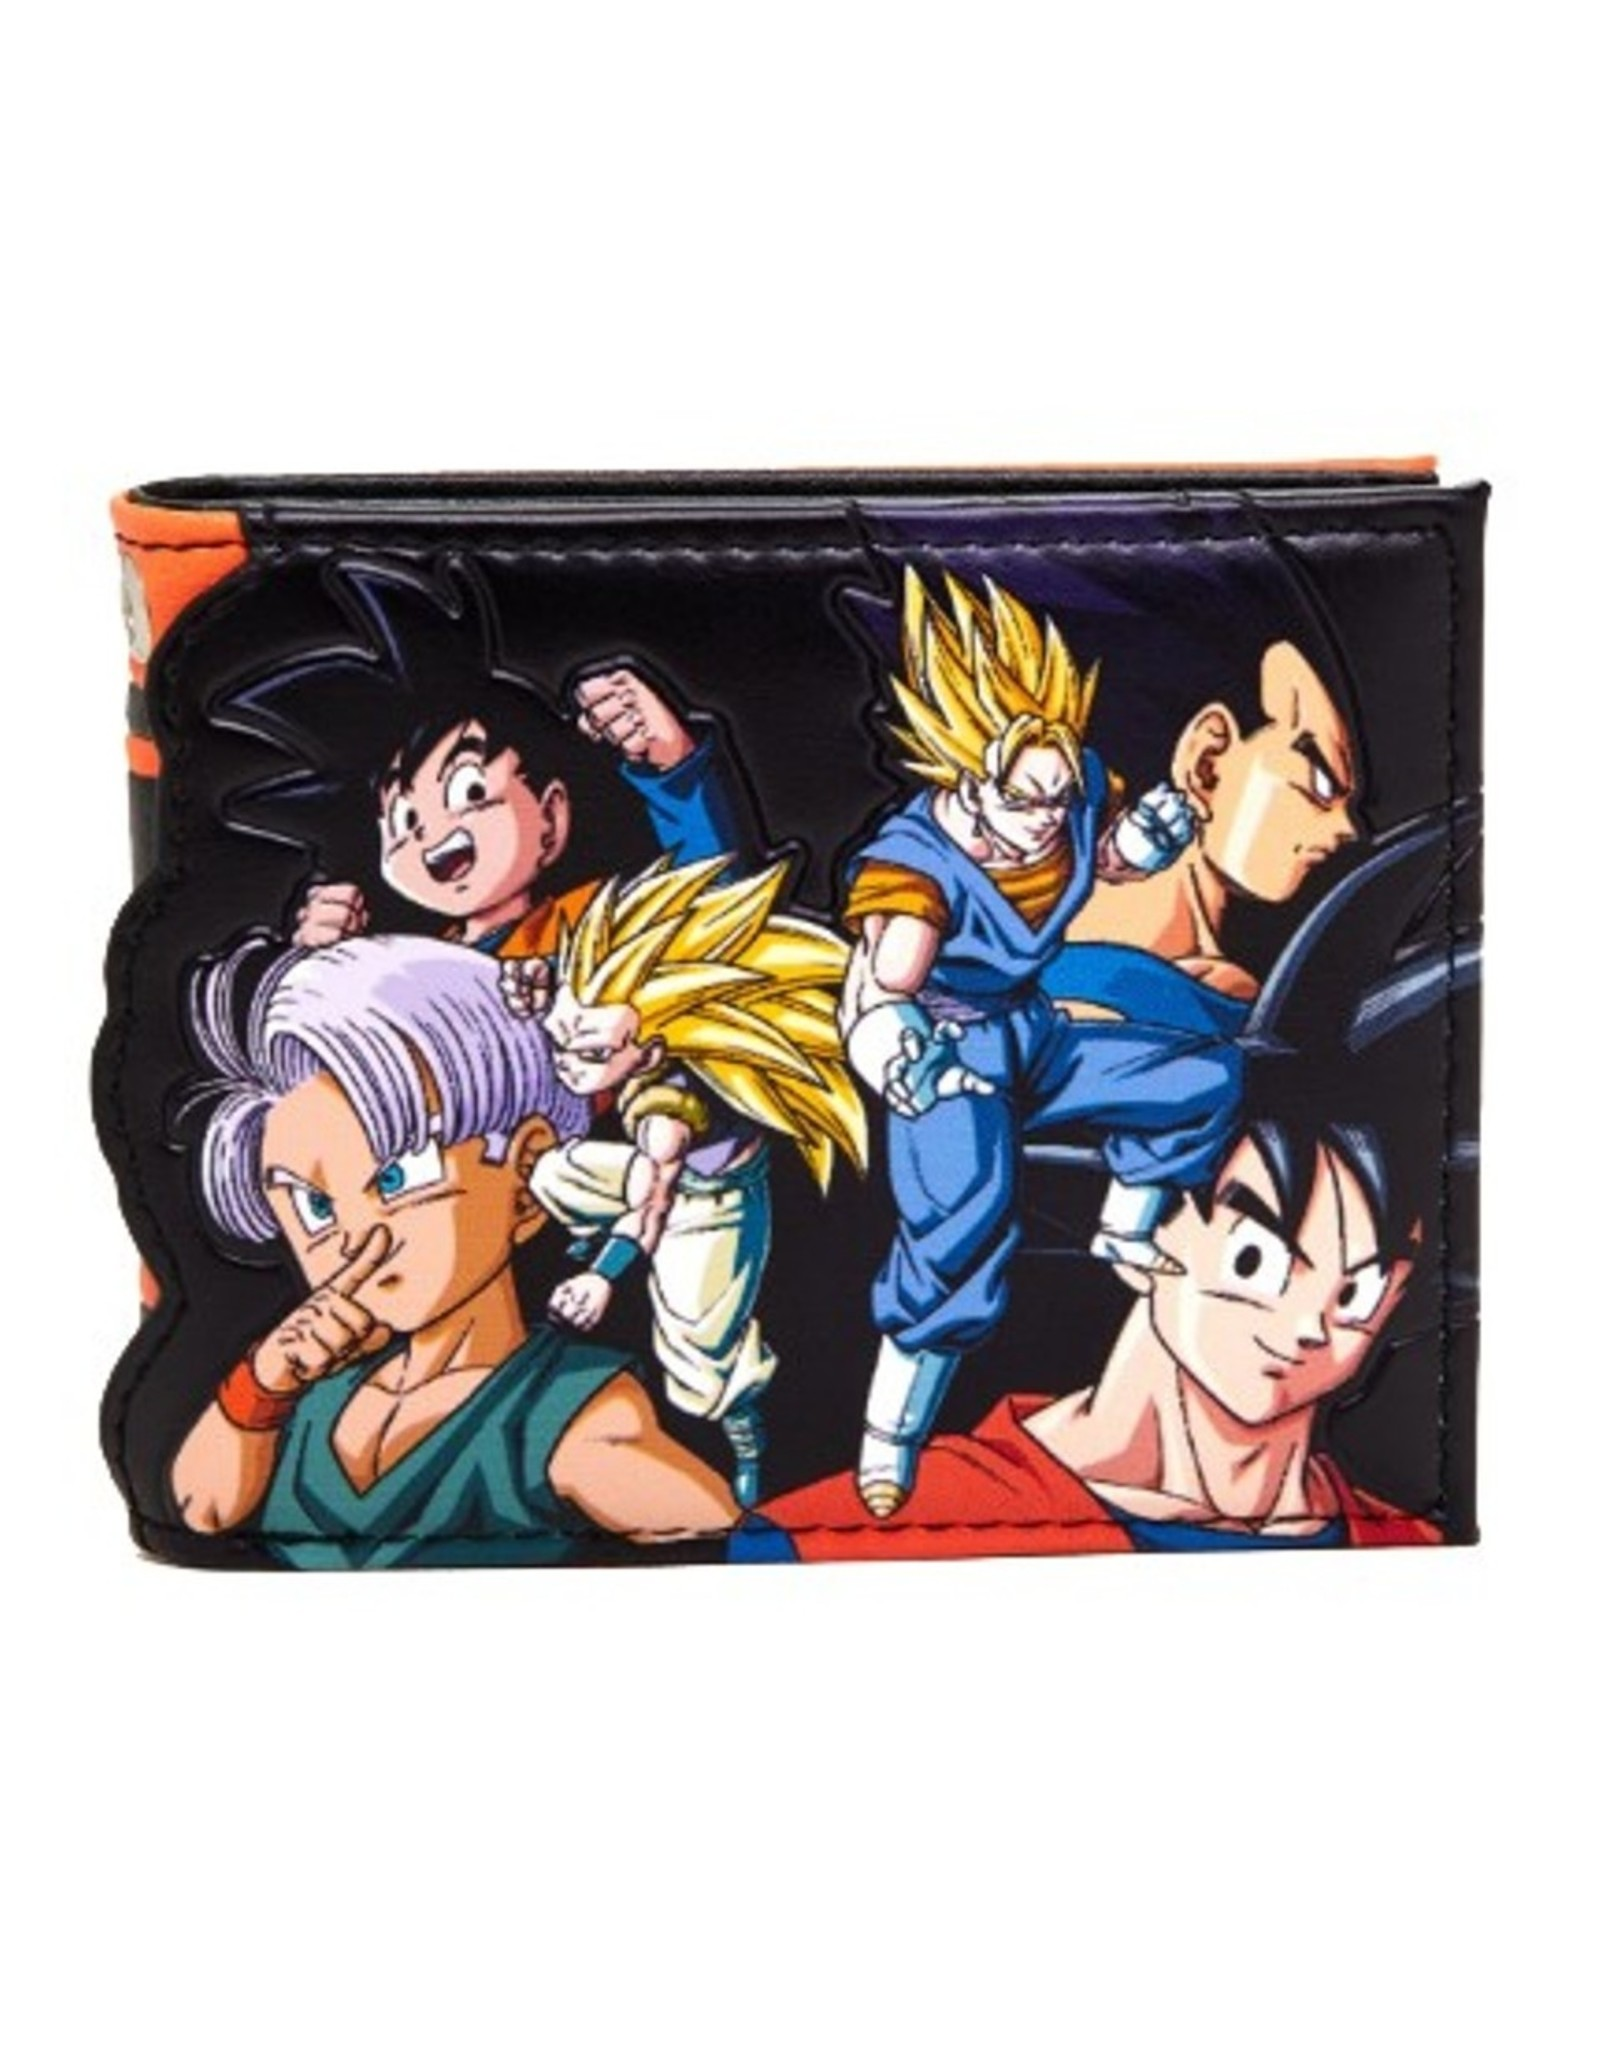 Dragon Ball Z Merchandise wallets  - Dragon Ball Z All Characters wallet